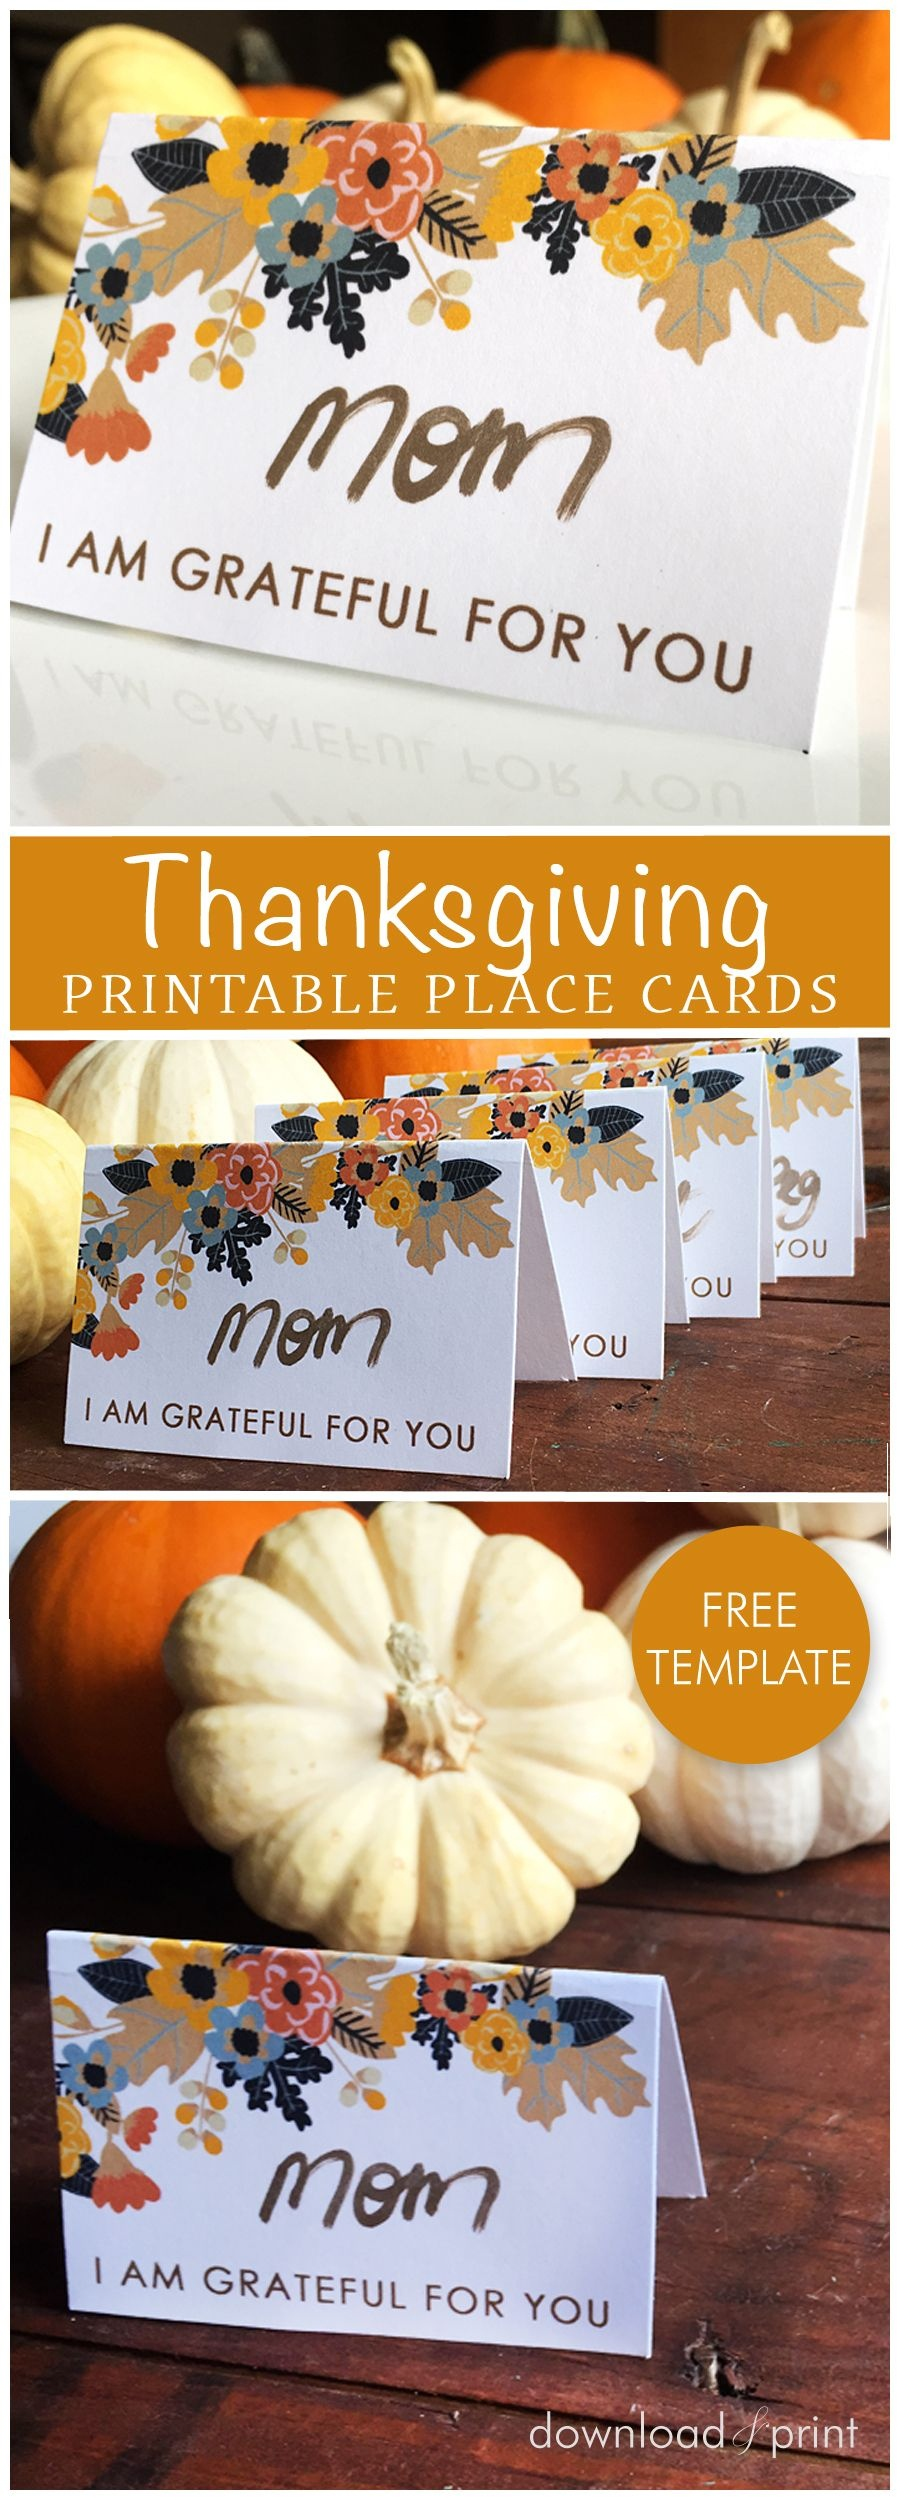 Free Printable Place Card Template, Perfect For Your Thanksgiving - Free Printable Thanksgiving Place Cards